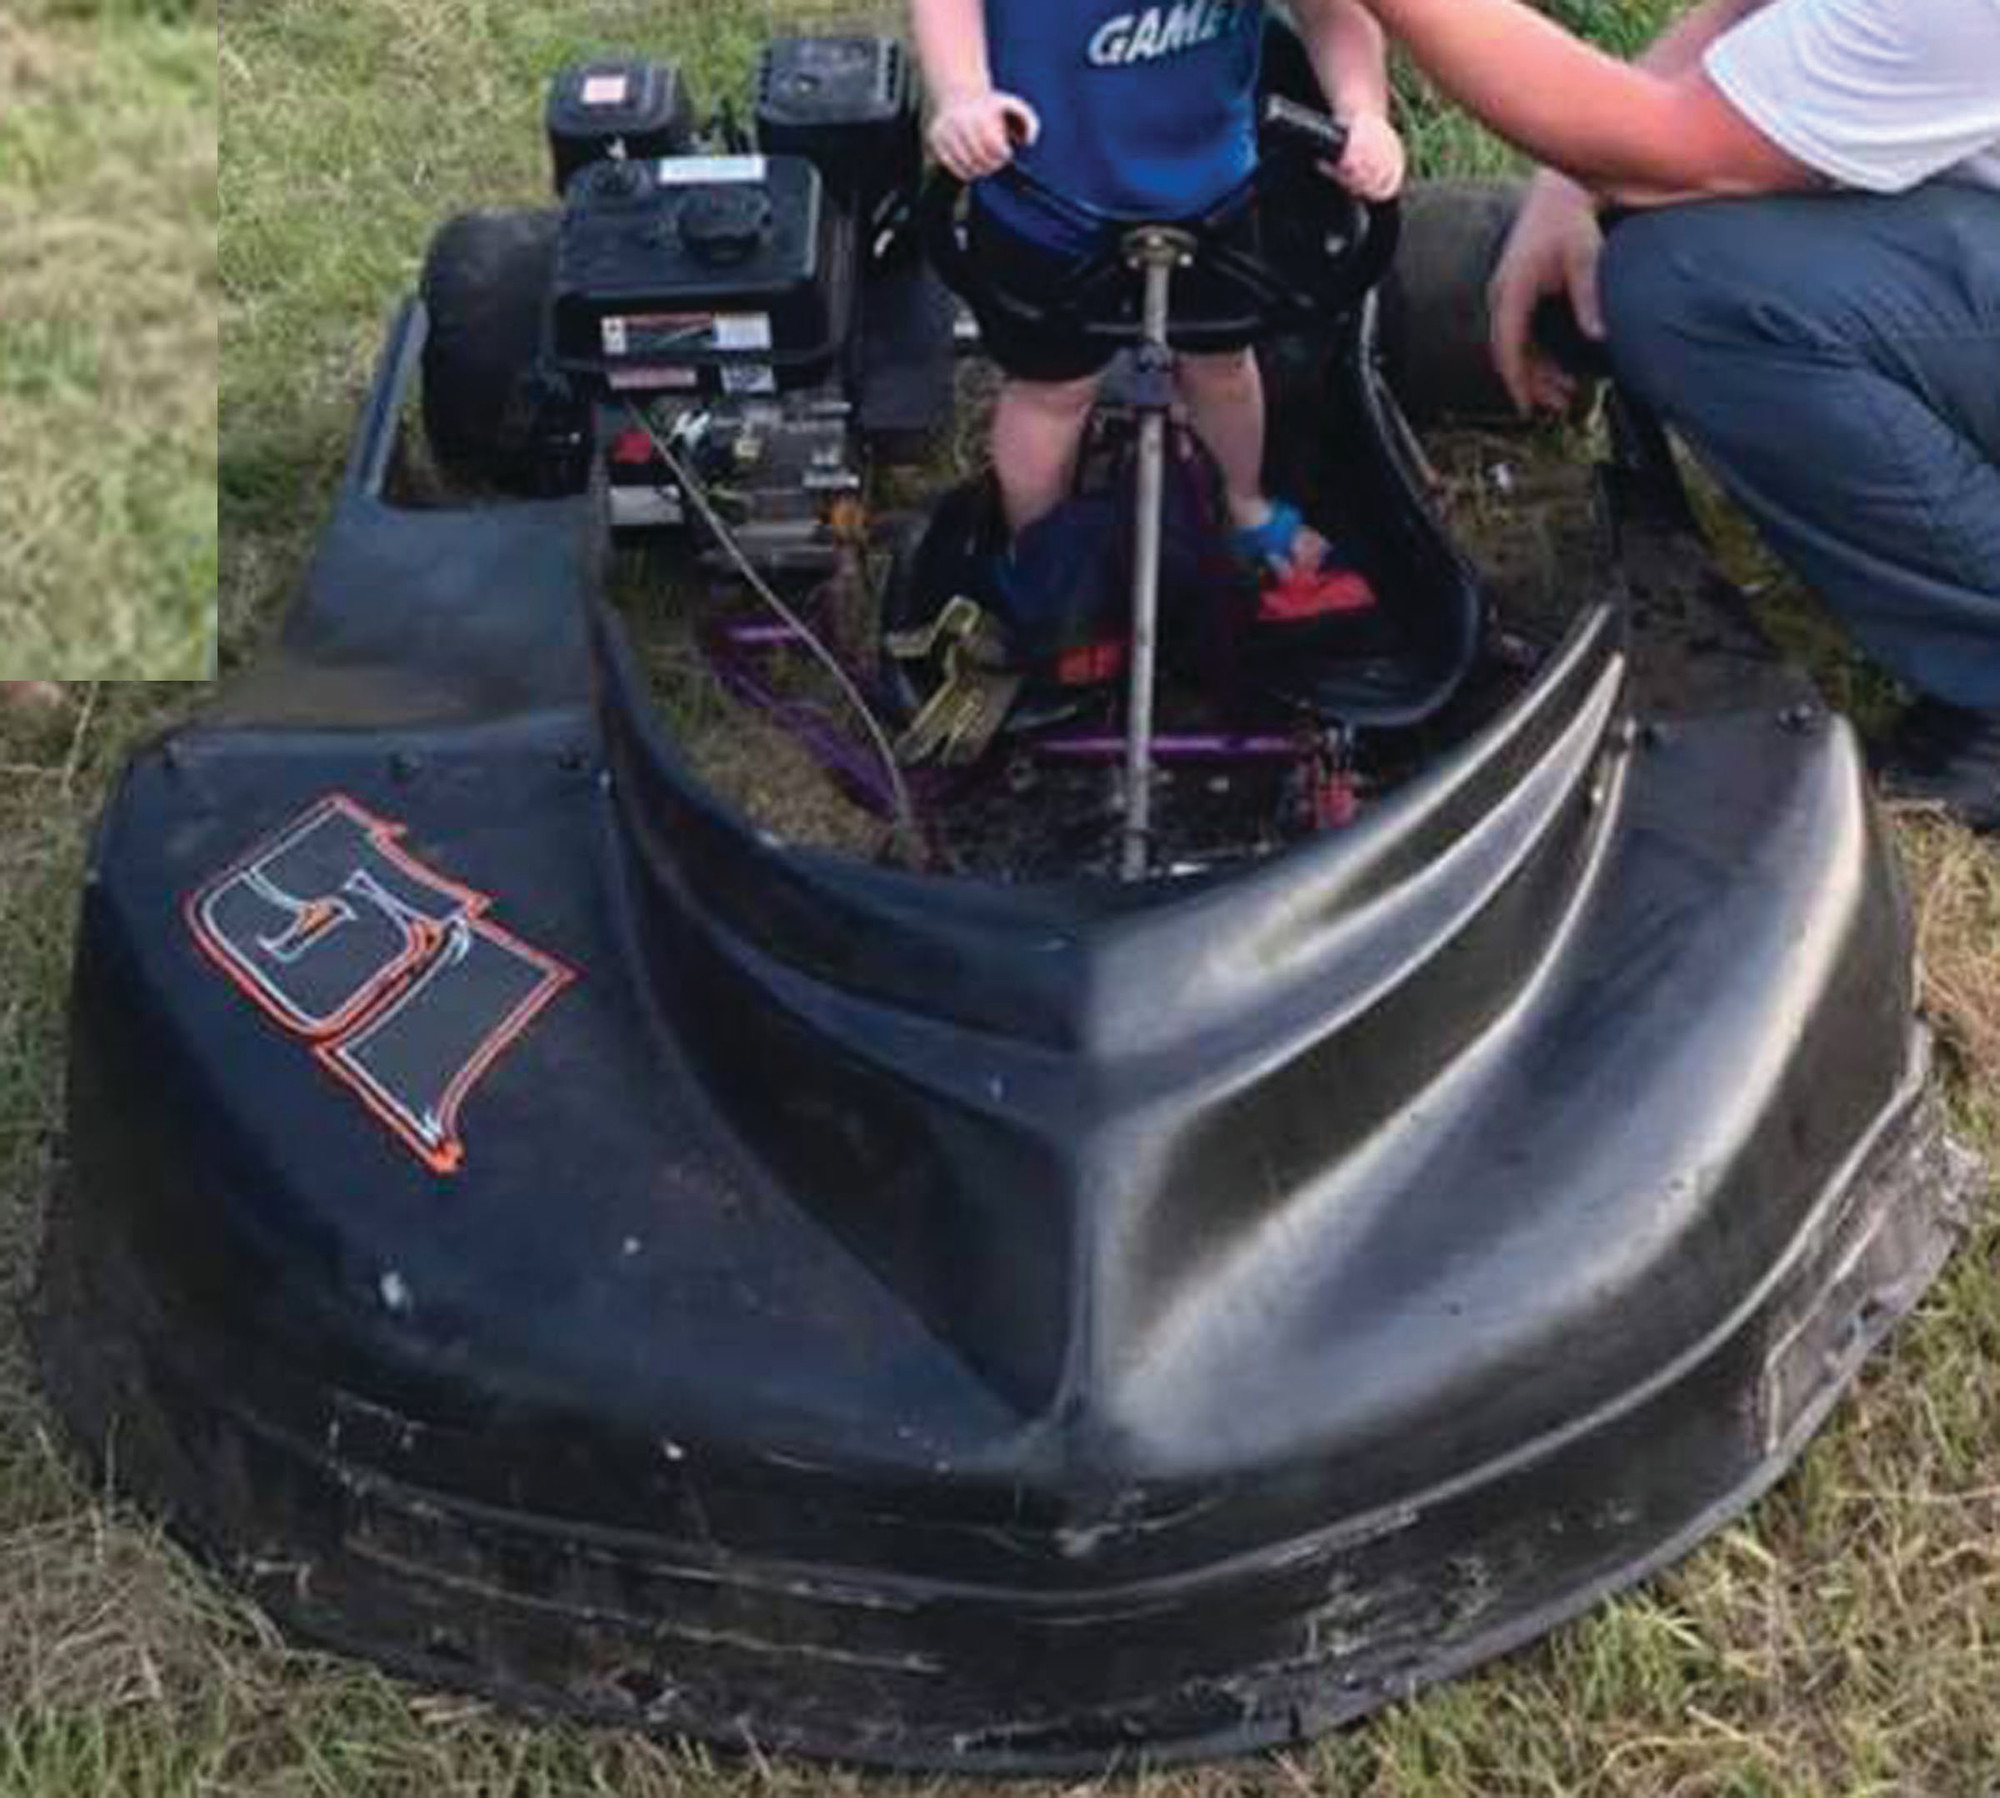 Three go-carts were stolen on July 2 from 1270 Epps Road.